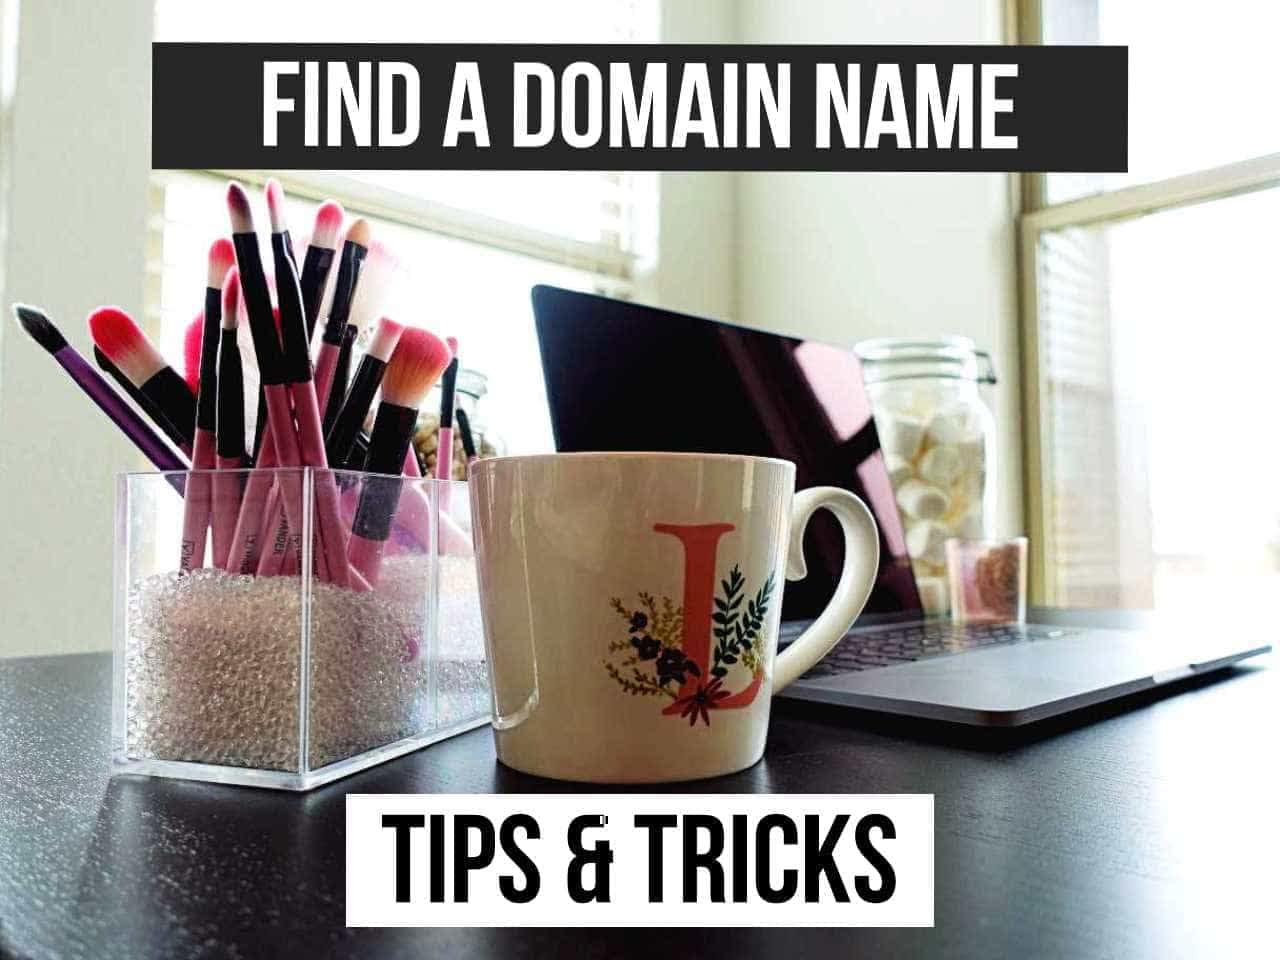 HOW TO FIND A DOMAIN NAME?